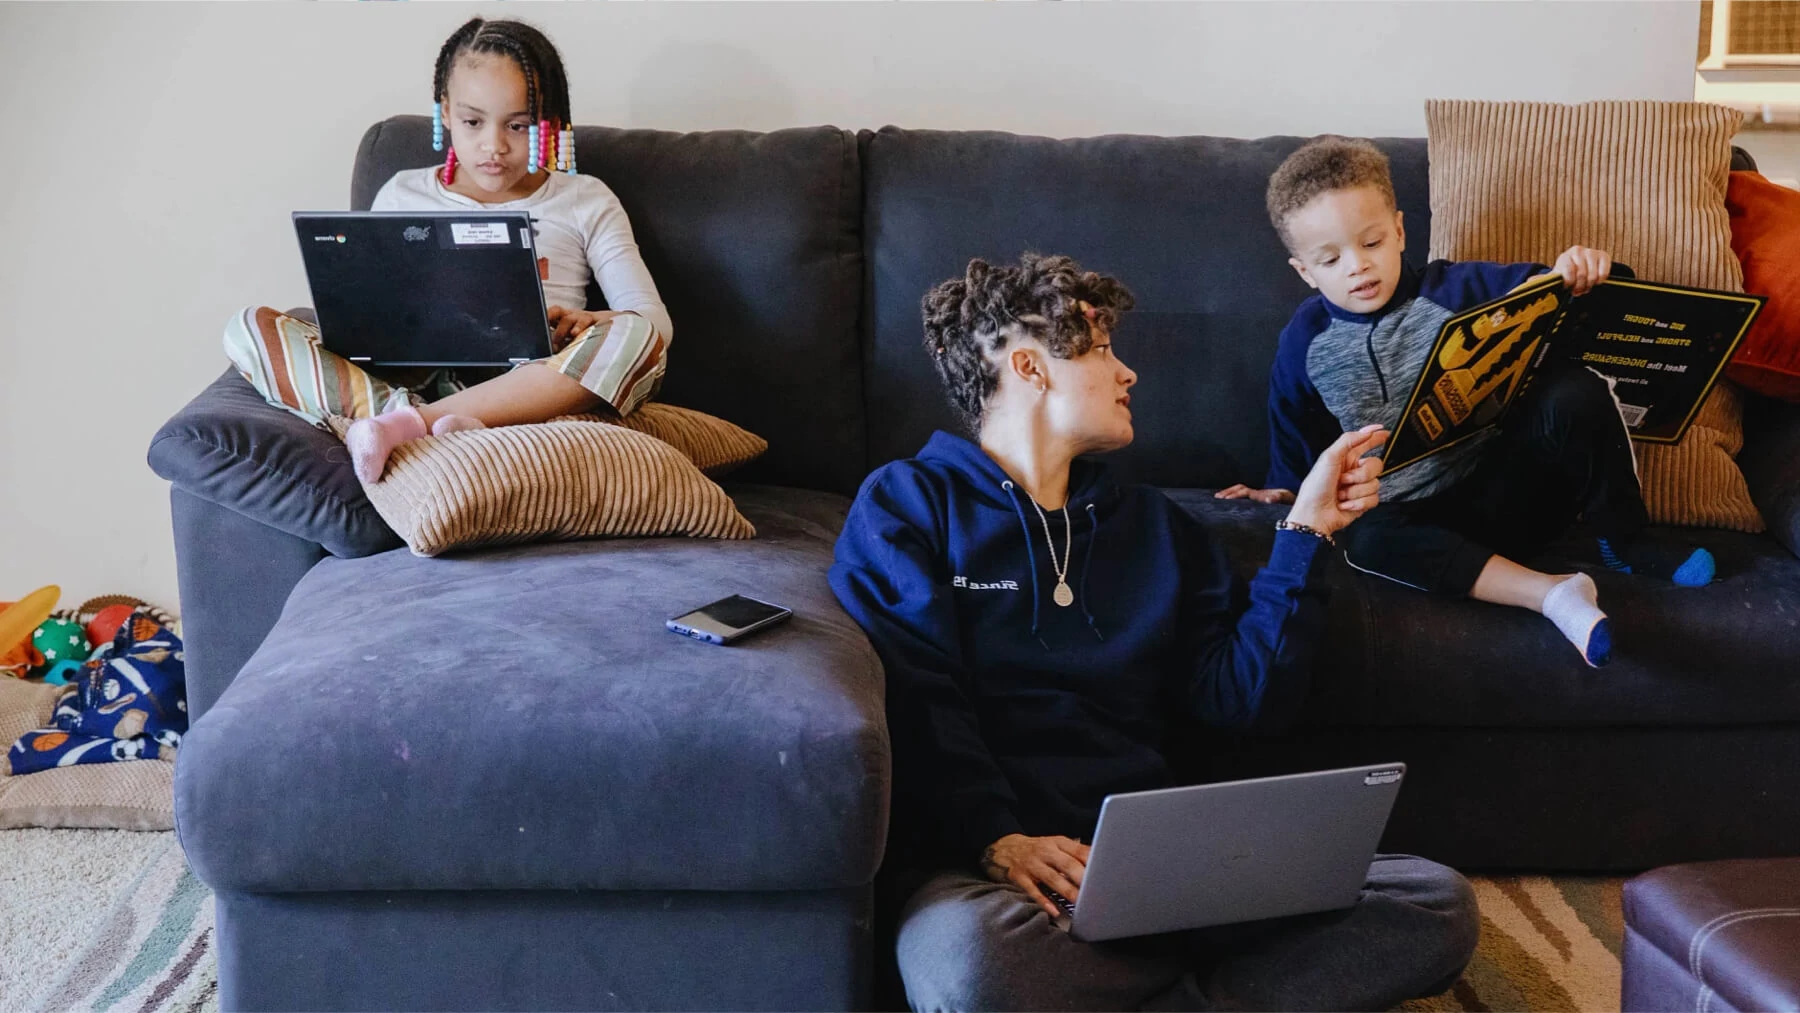 photo of a woman with two young children reading on a large blue sofa